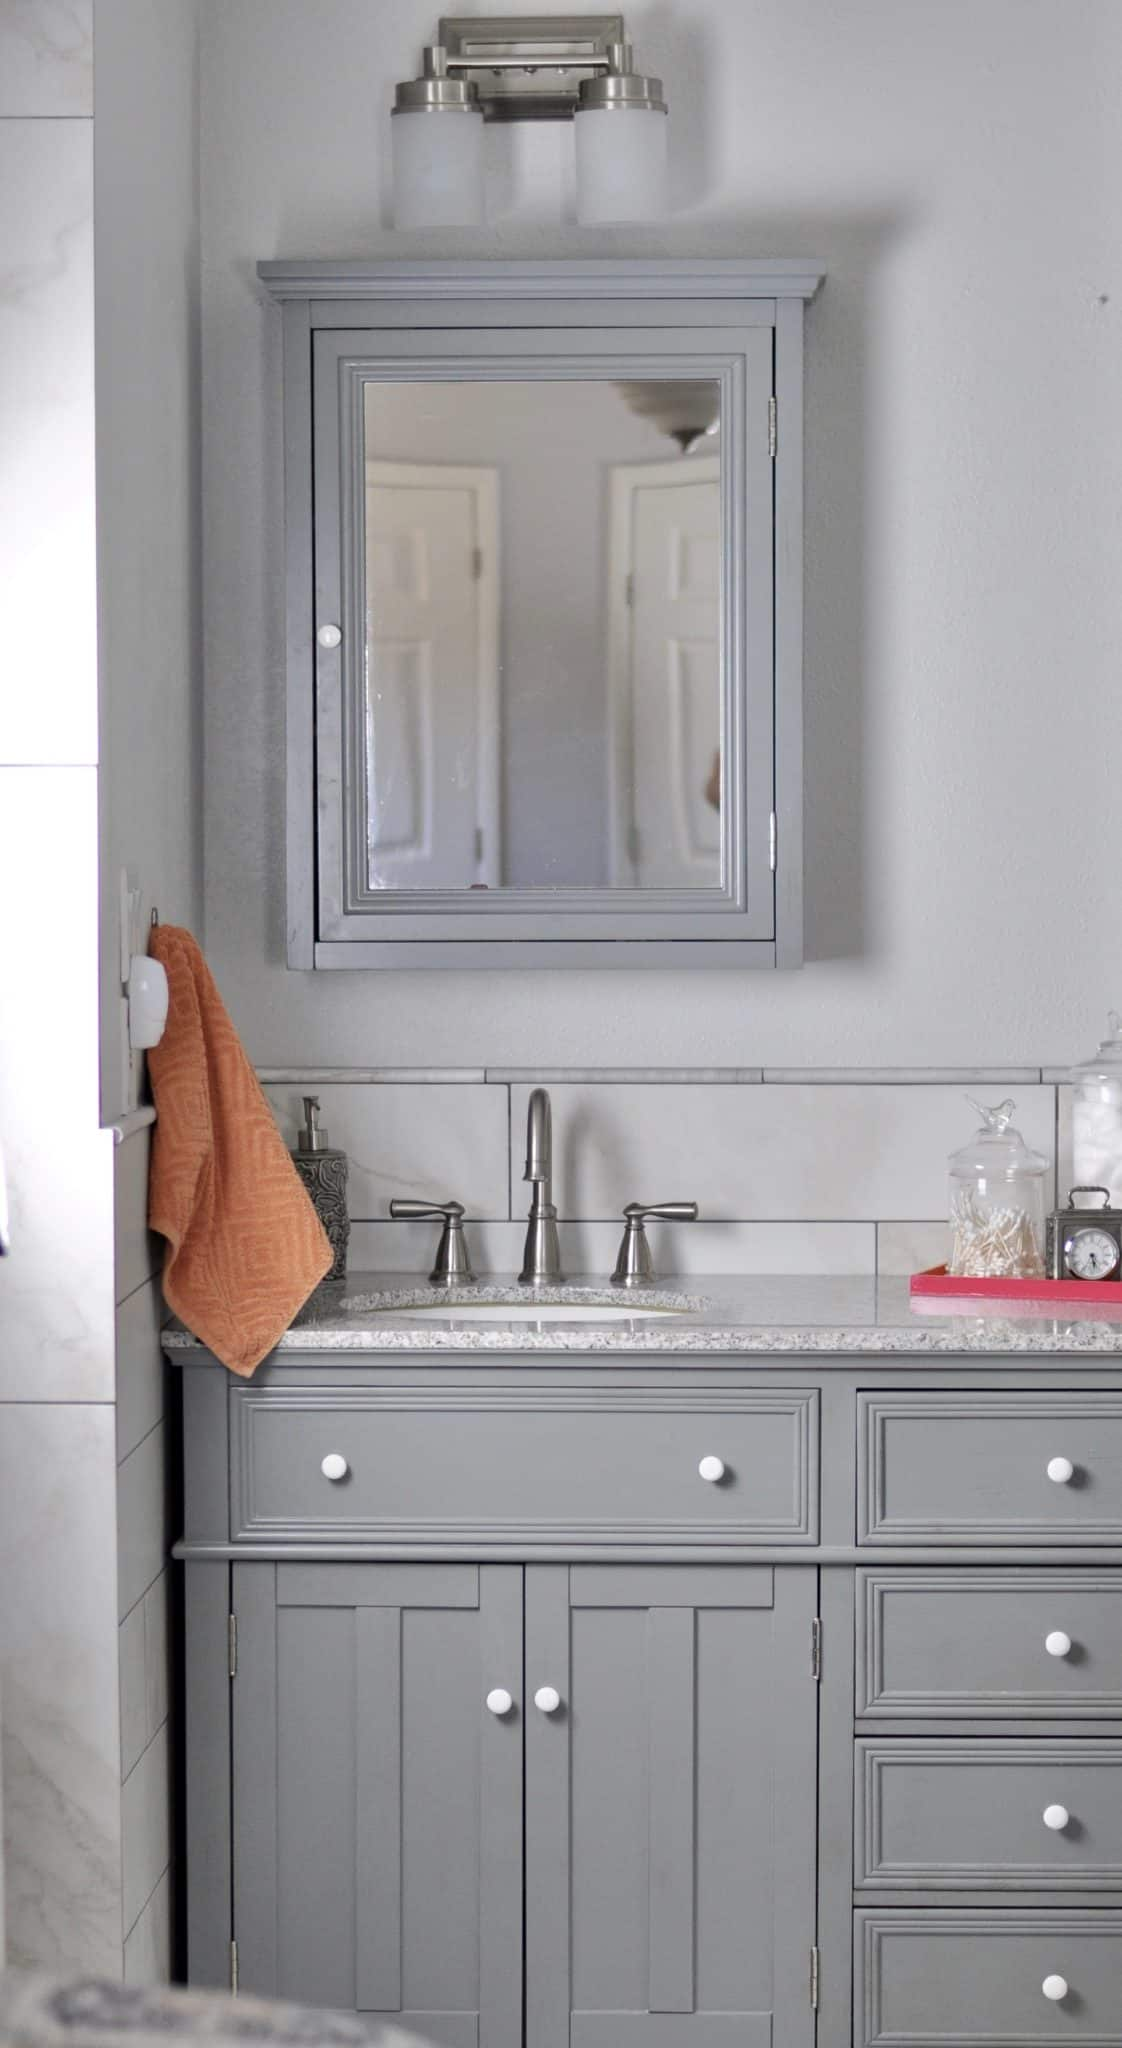 bathroom remodel double vanity single sink side with mirror and faucet